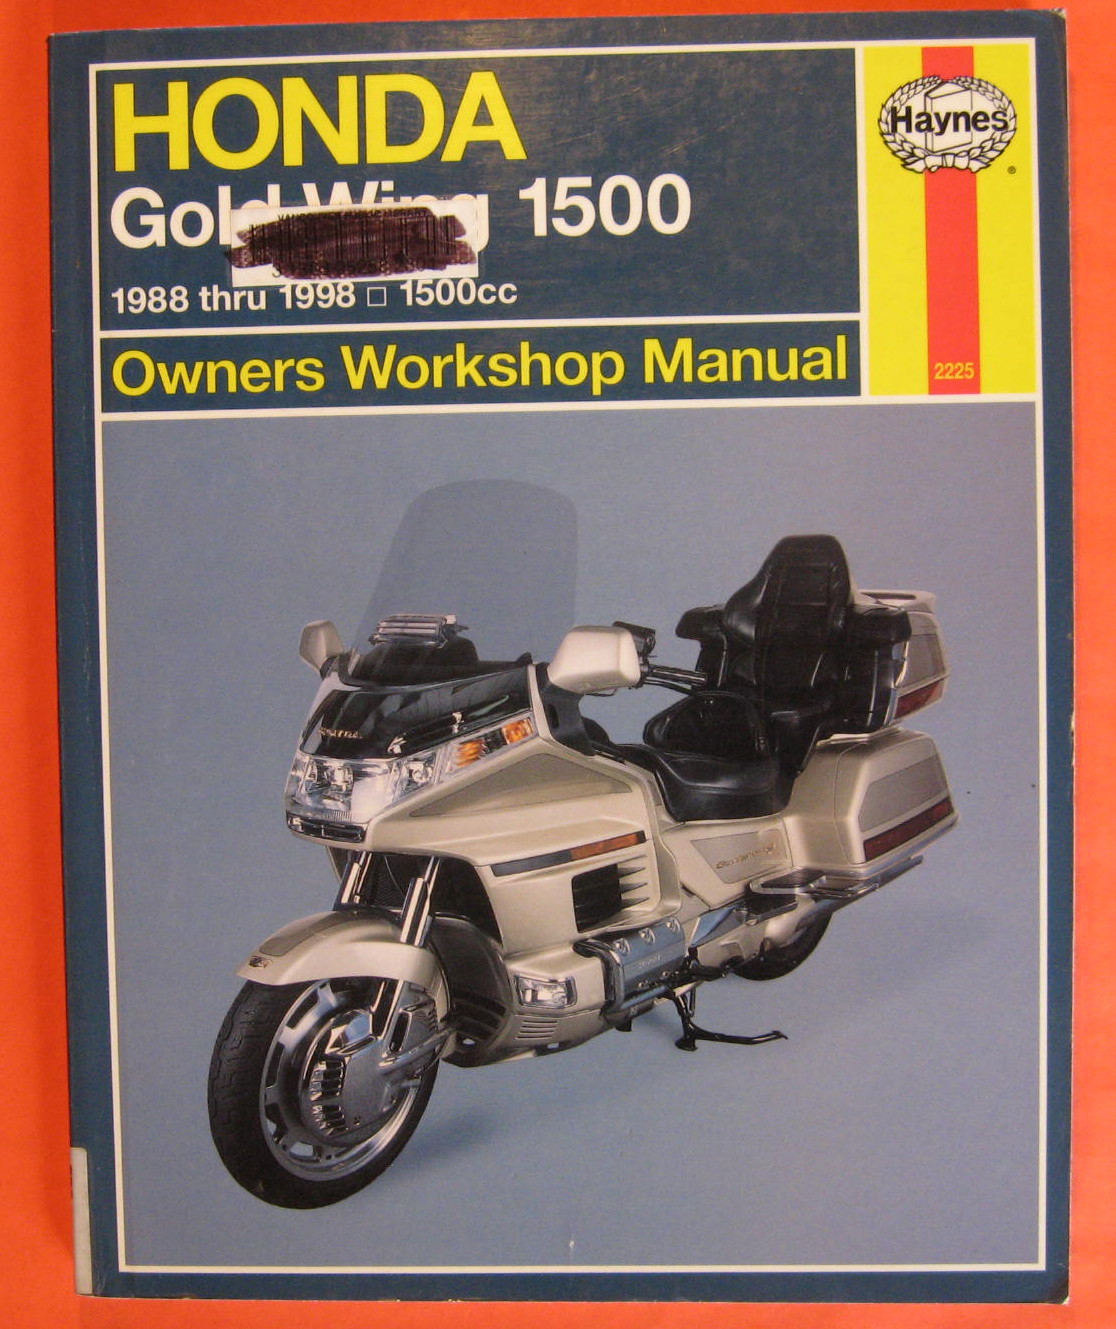 Image for Honda GL1500 Gold Wing Owners Workshop Manual: Models Covered Honda Gl1500 Gold Wing, 1502 Cc. 1988 Through 1998